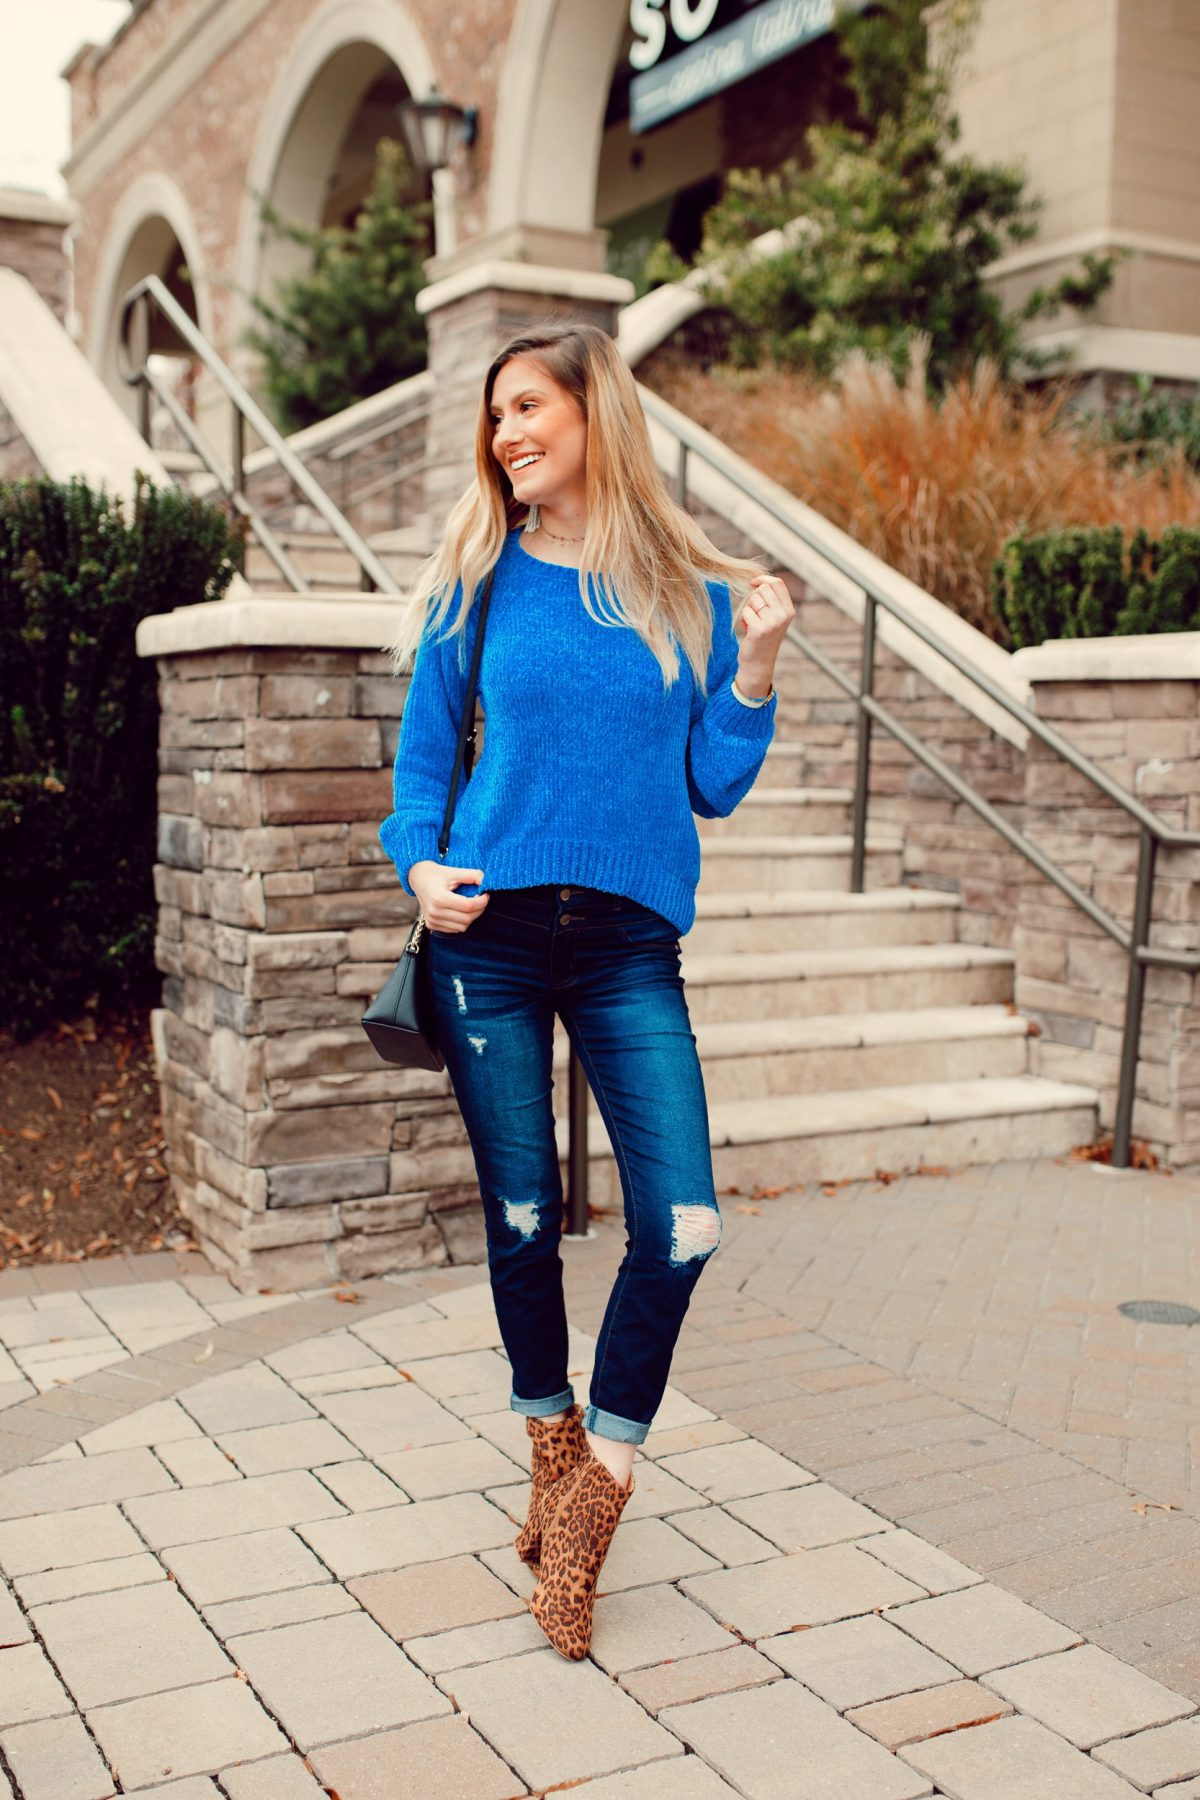 How To Wear A Cropped Sweater When You're Self-Conscious | How To Wear A Crop Top by North Carolina fashion and lifestyle blogger Jessica Linn.